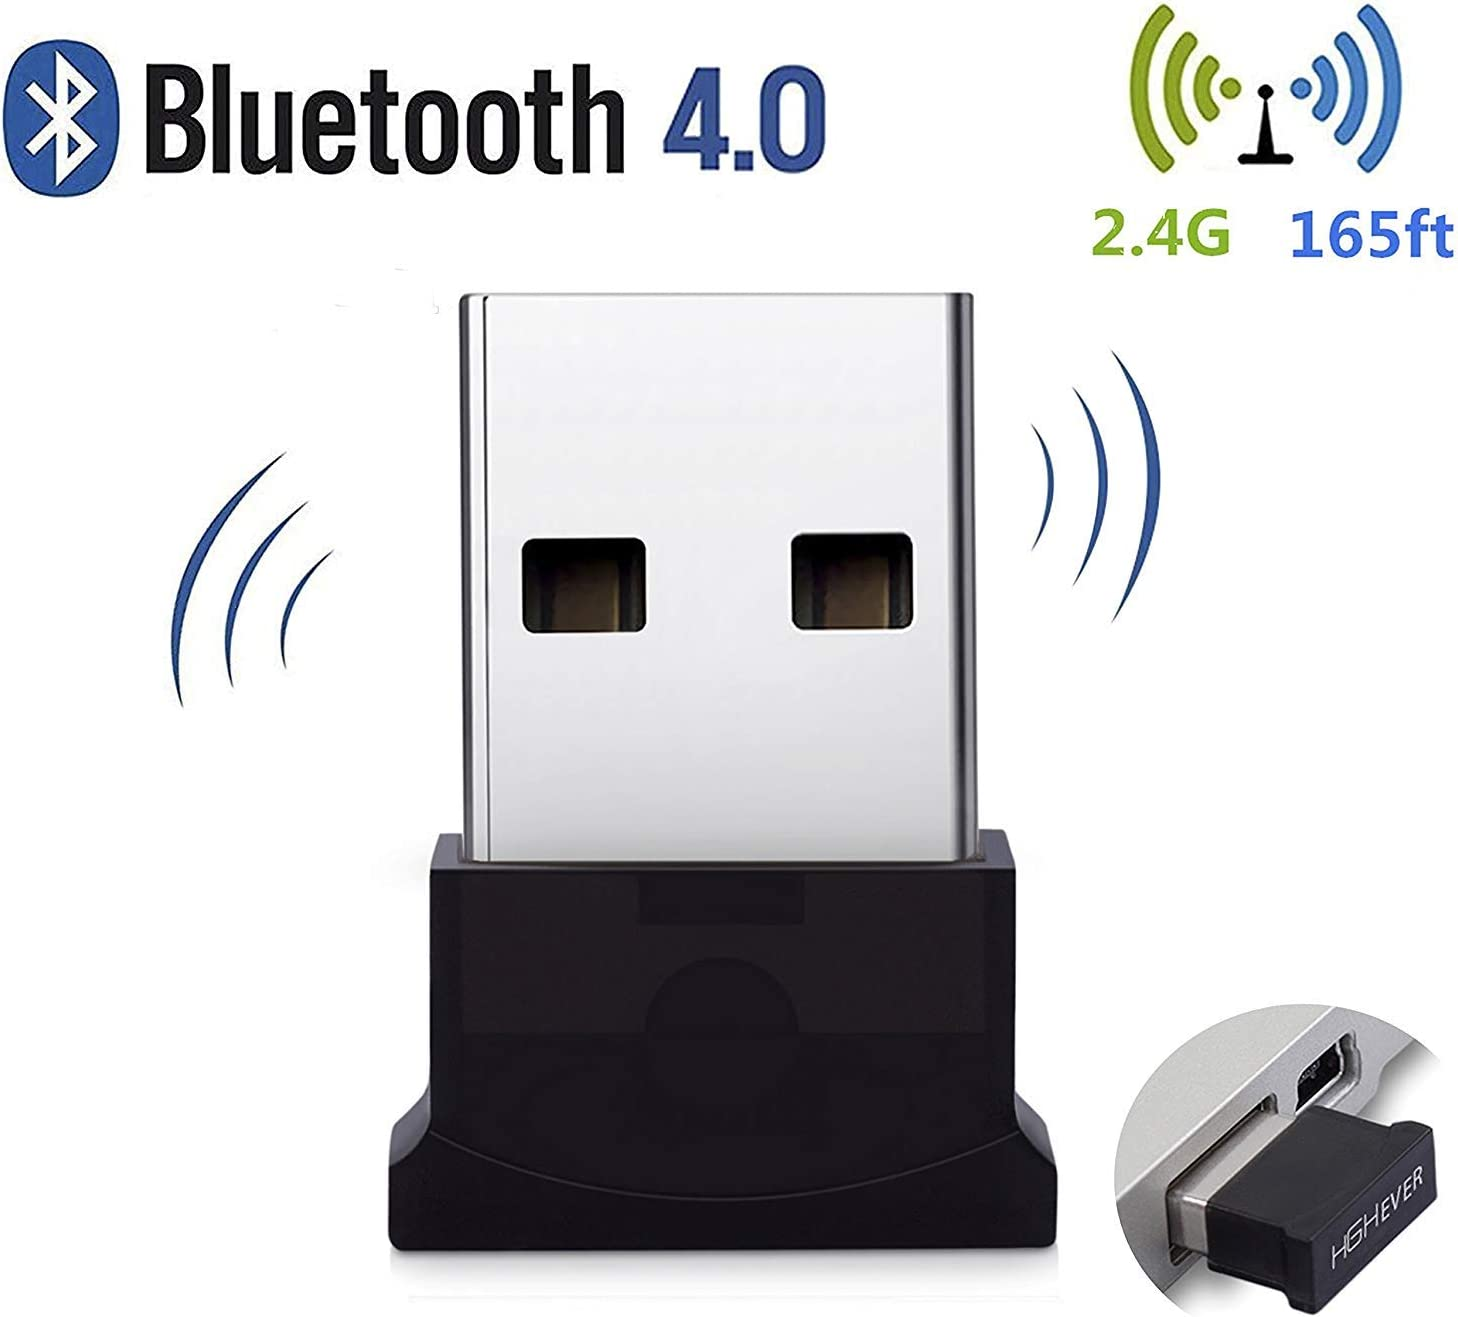 Amazon Com Bluetooth Usb Adapter 4 0 Bluetooth Low Energy 2 4ghz Range Wireless Usb Dongle Adapter For Pc Windows 10 8 1 8 7 Vista Xp Computers Accessories